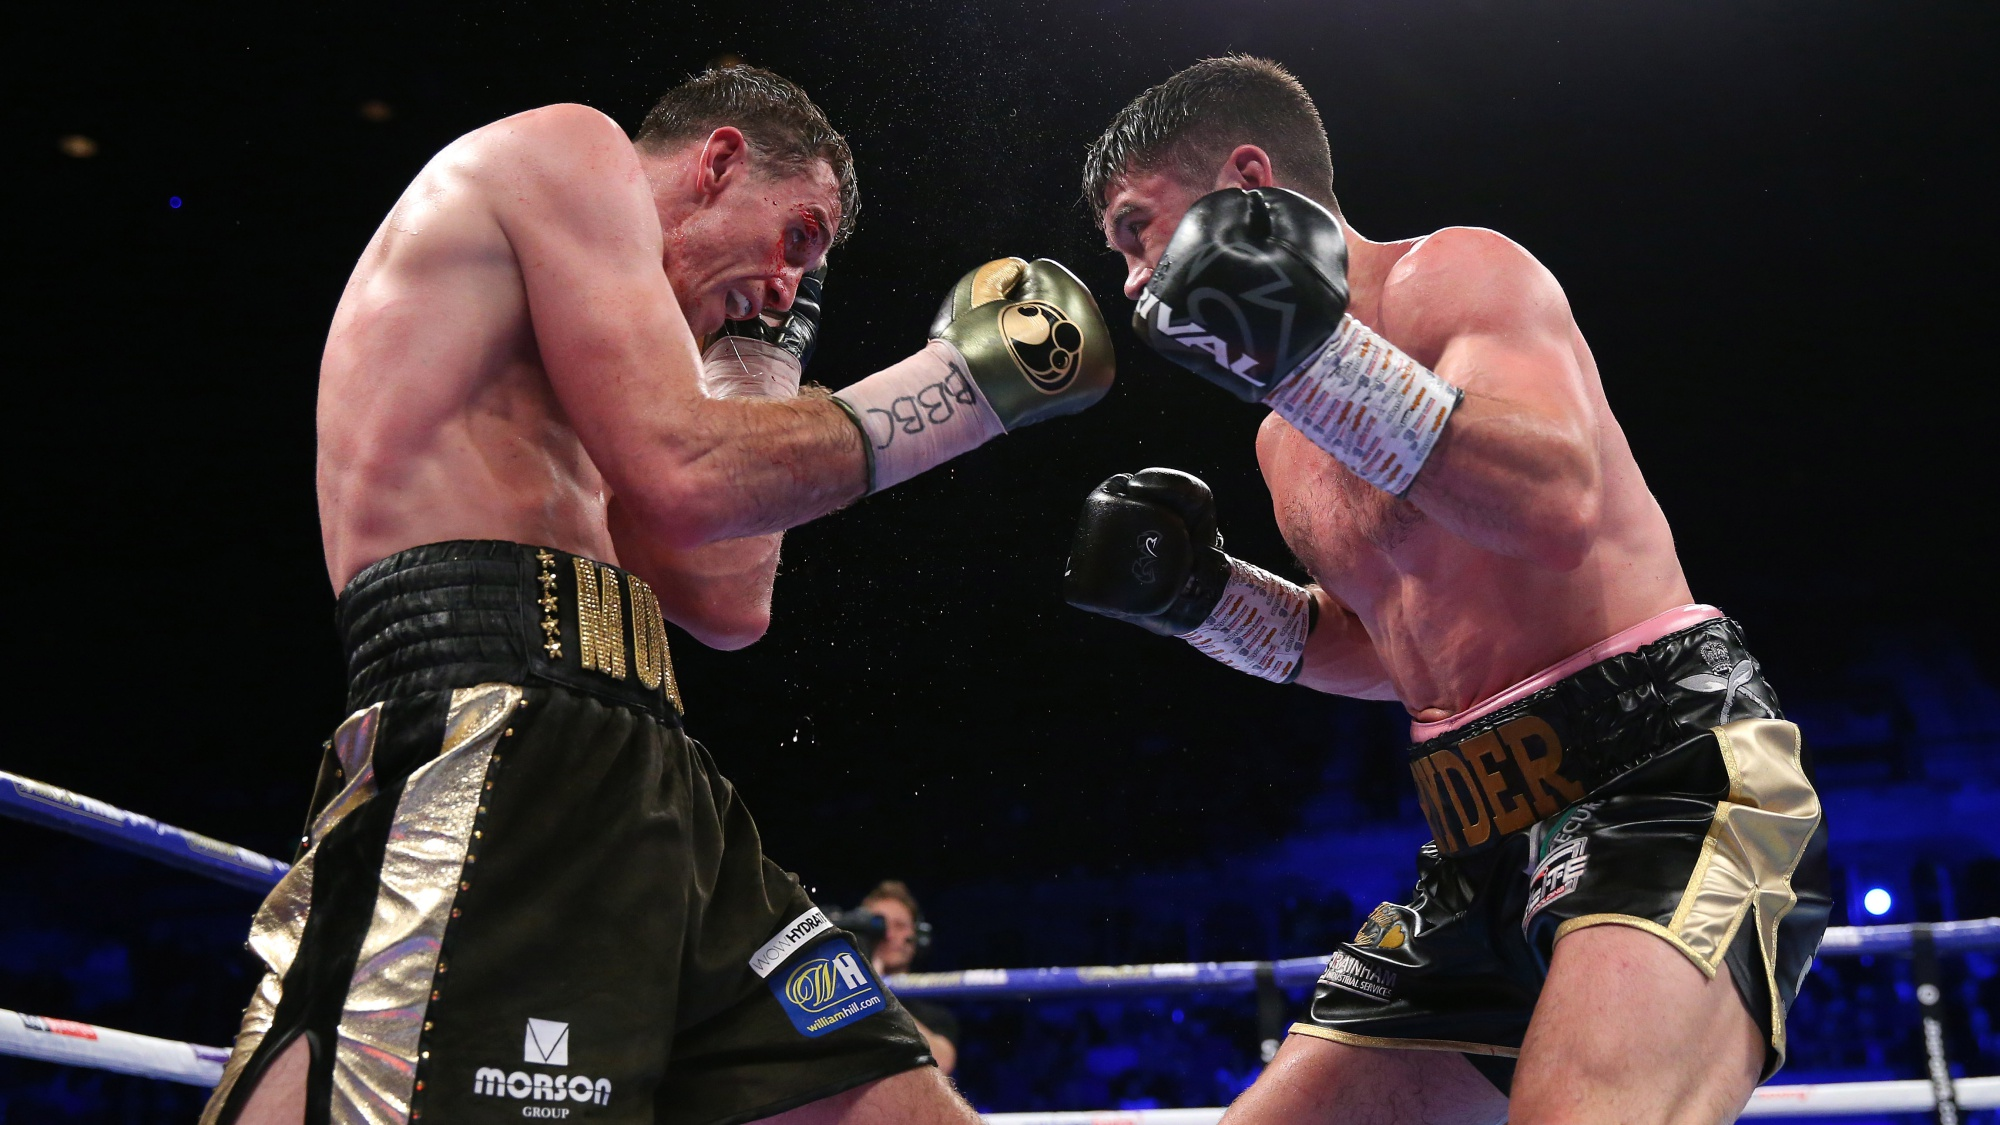 Pay TV Is Being Supplemented by Other Platforms, Top Rank Boxing President Says